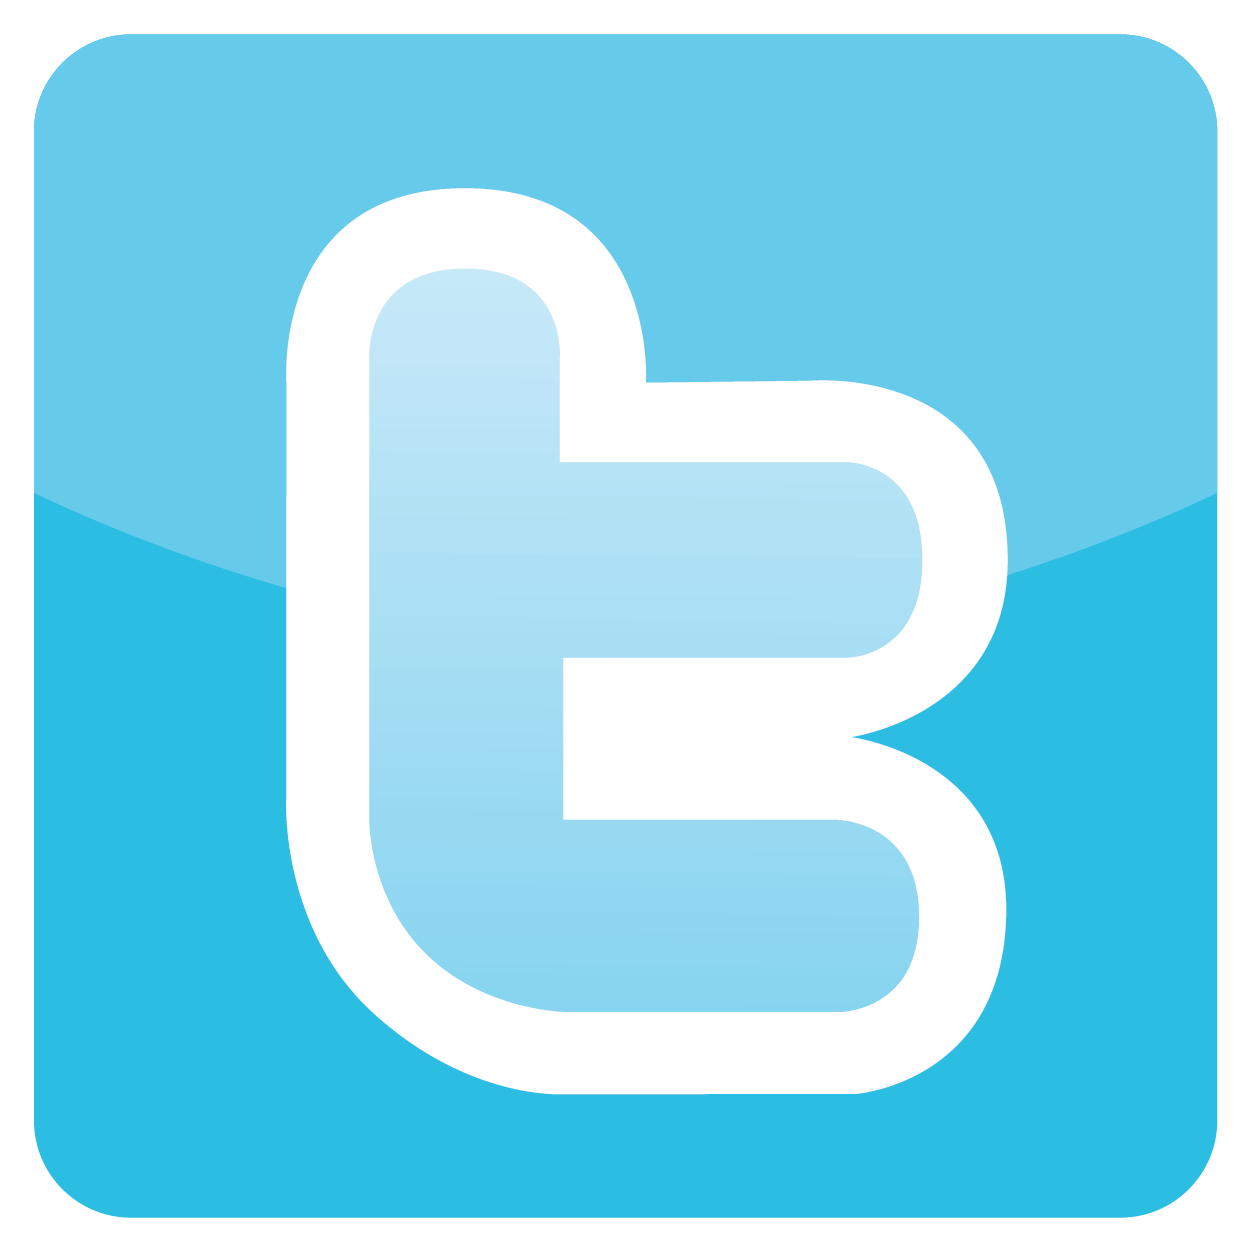 twitter-icon-circle-logo.png